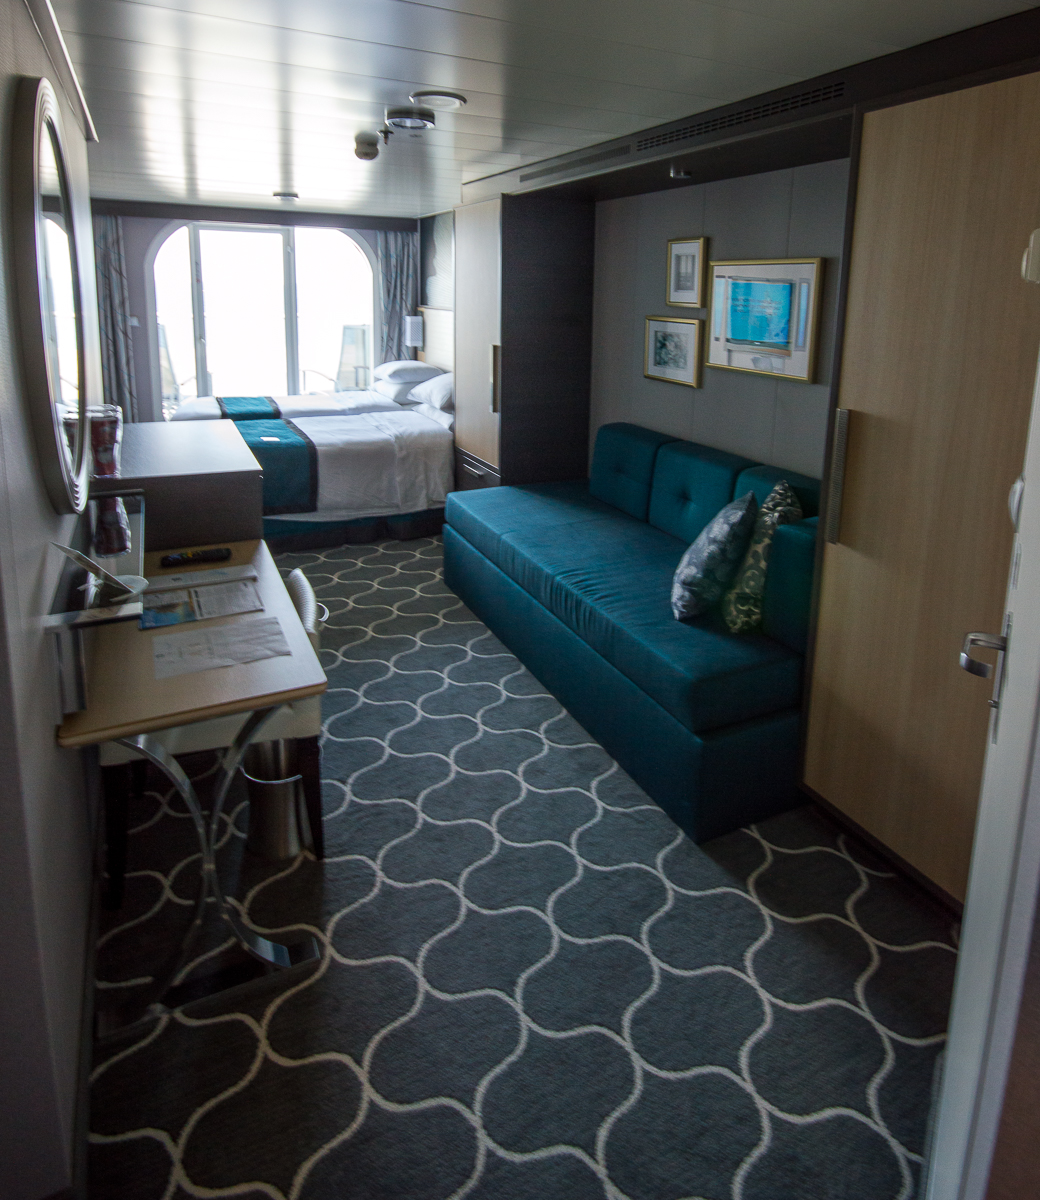 Balcony Stateroom aboard the Harmony of the Seas